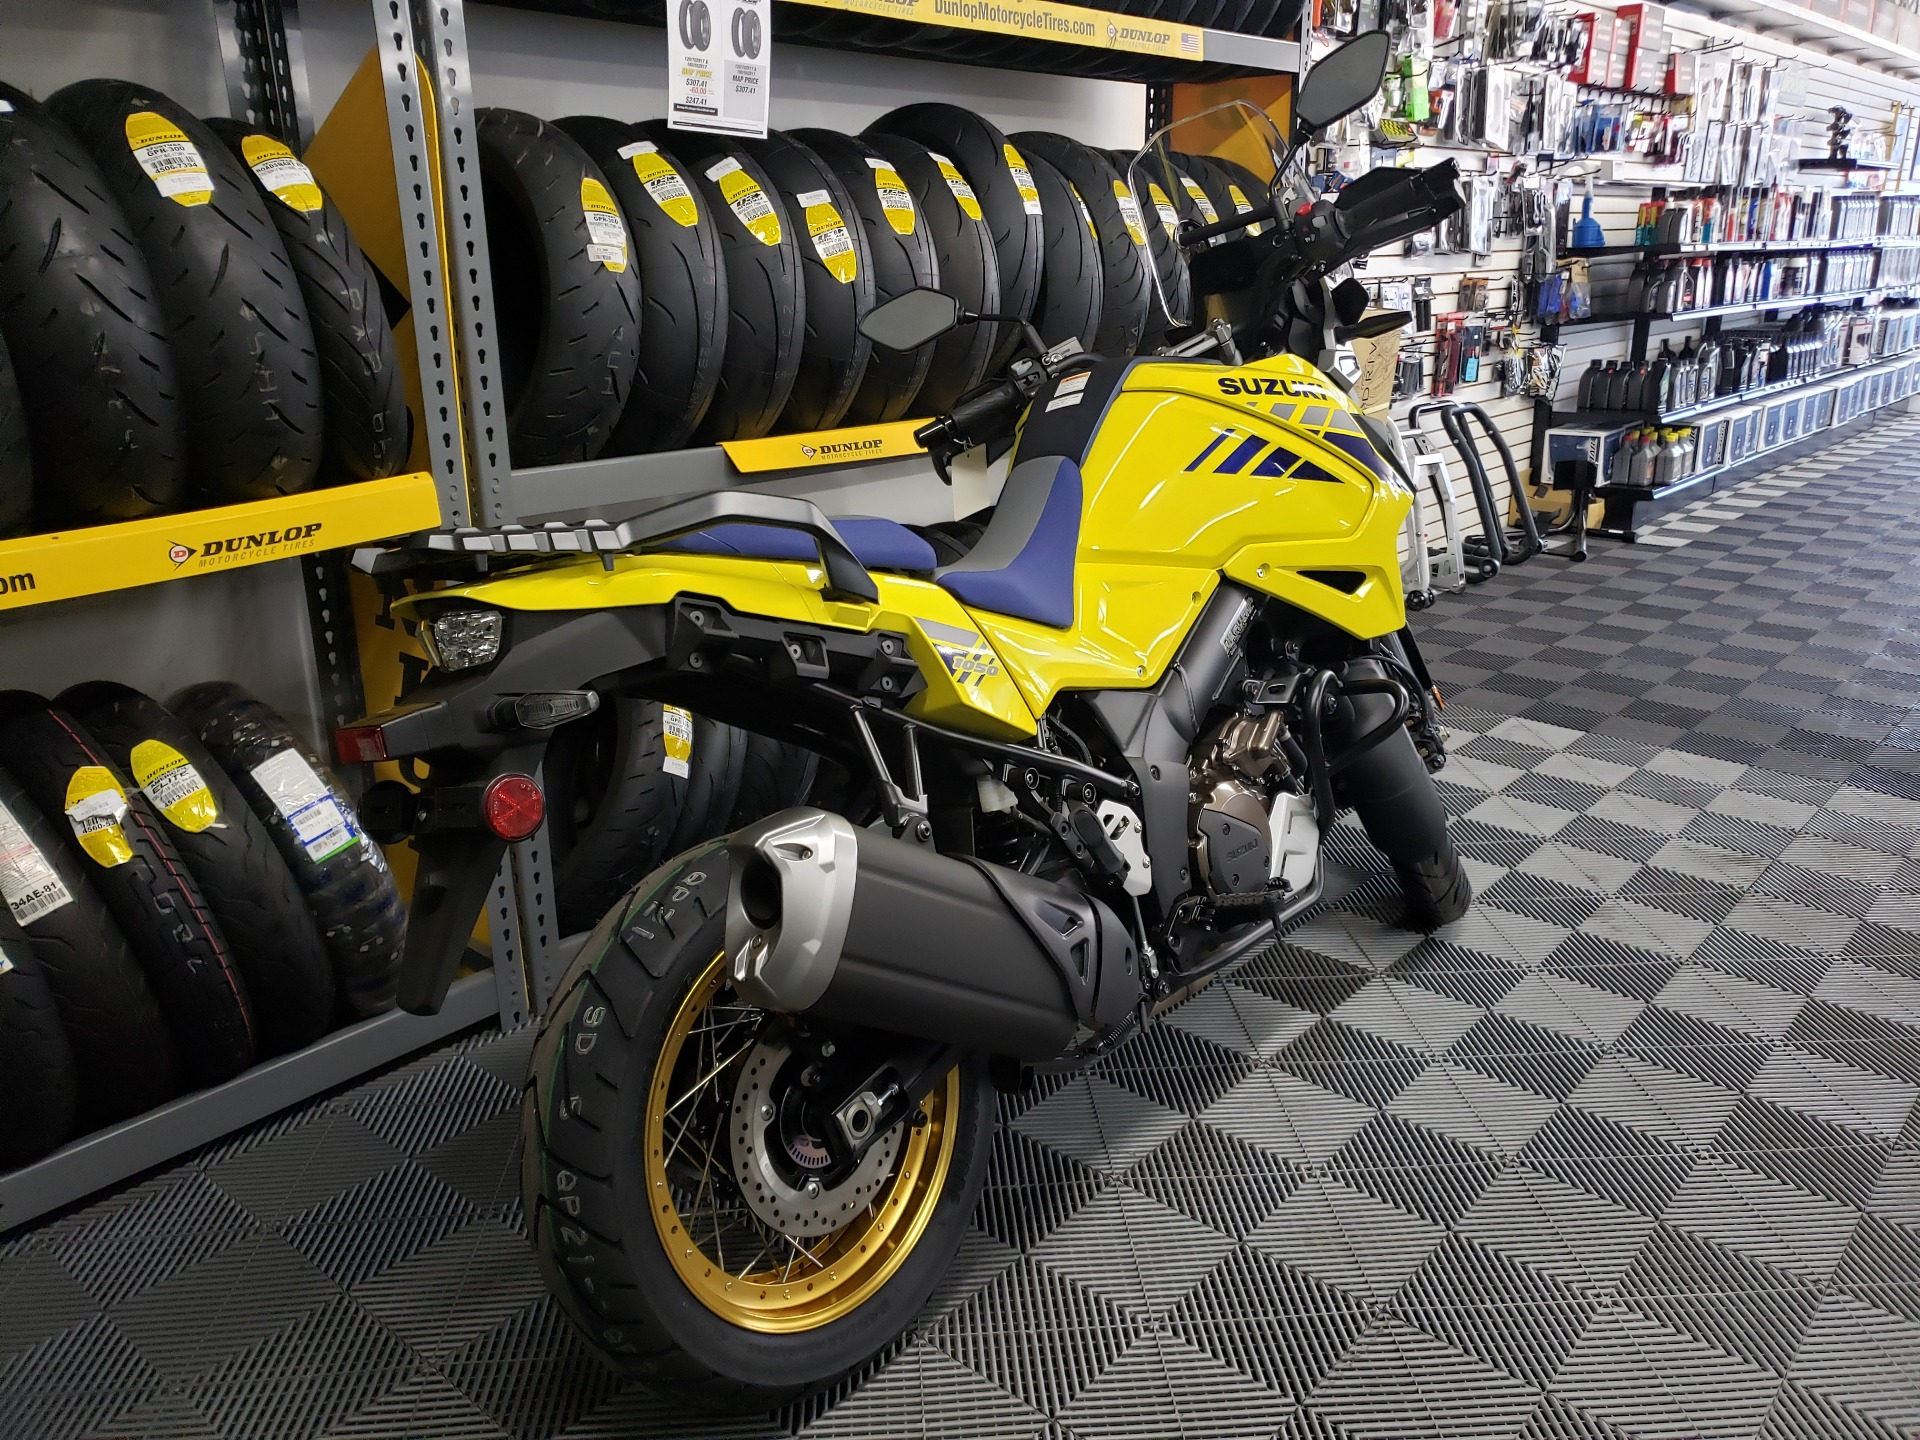 2020 Suzuki V-Strom 1050XT in Van Nuys, California - Photo 3